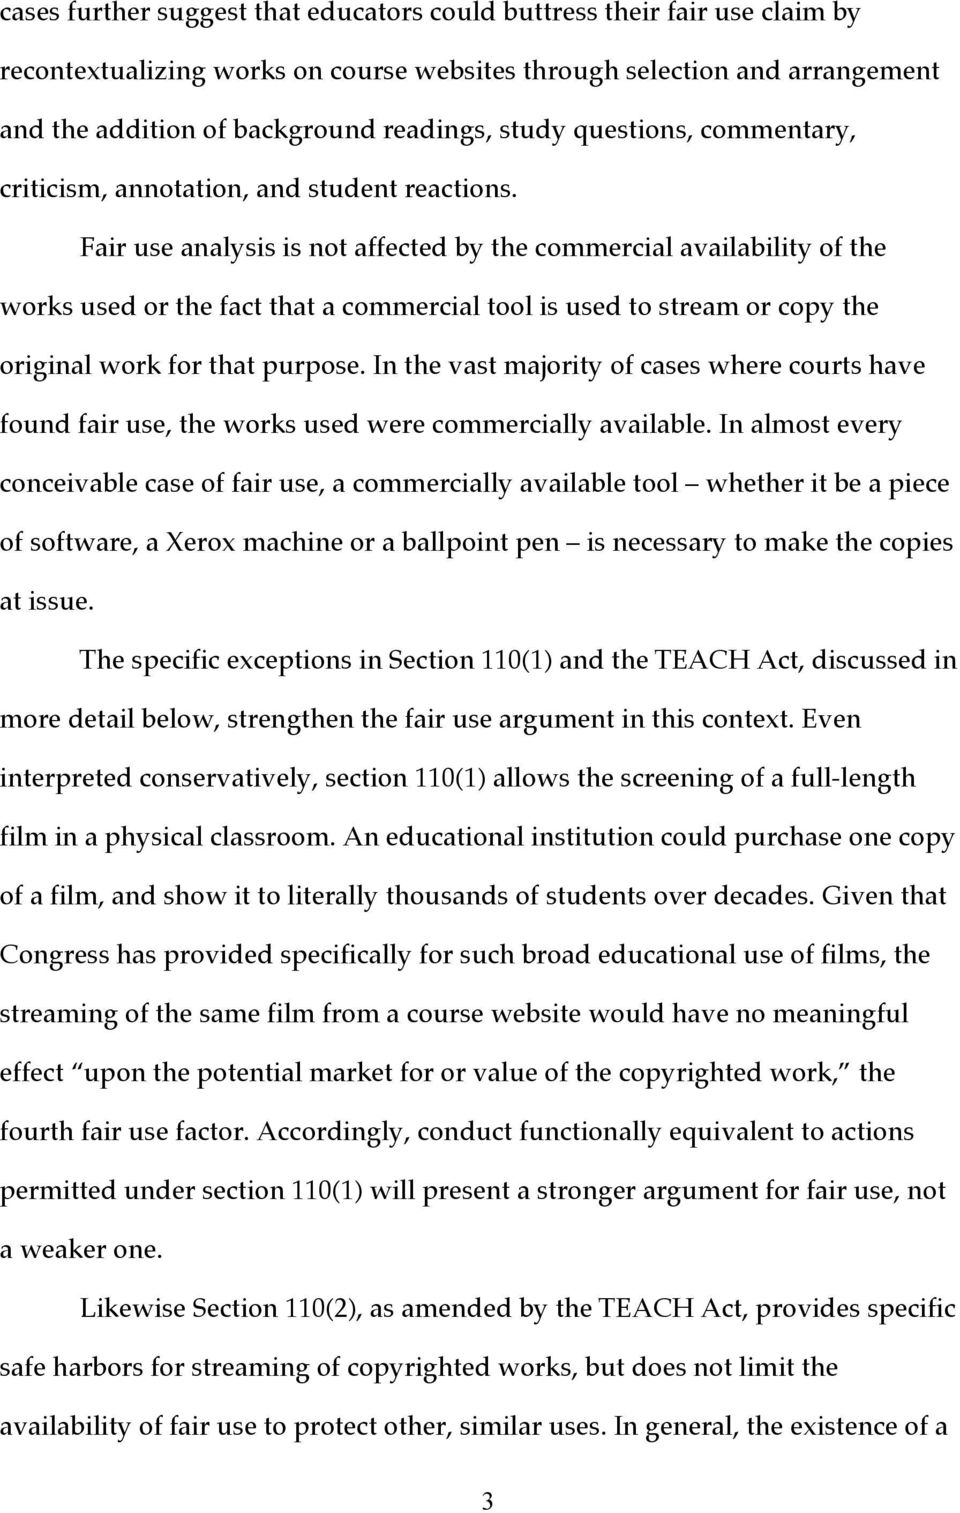 Fair use analysis is not affected by the commercial availability of the works used or the fact that a commercial tool is used to stream or copy the original work for that purpose.